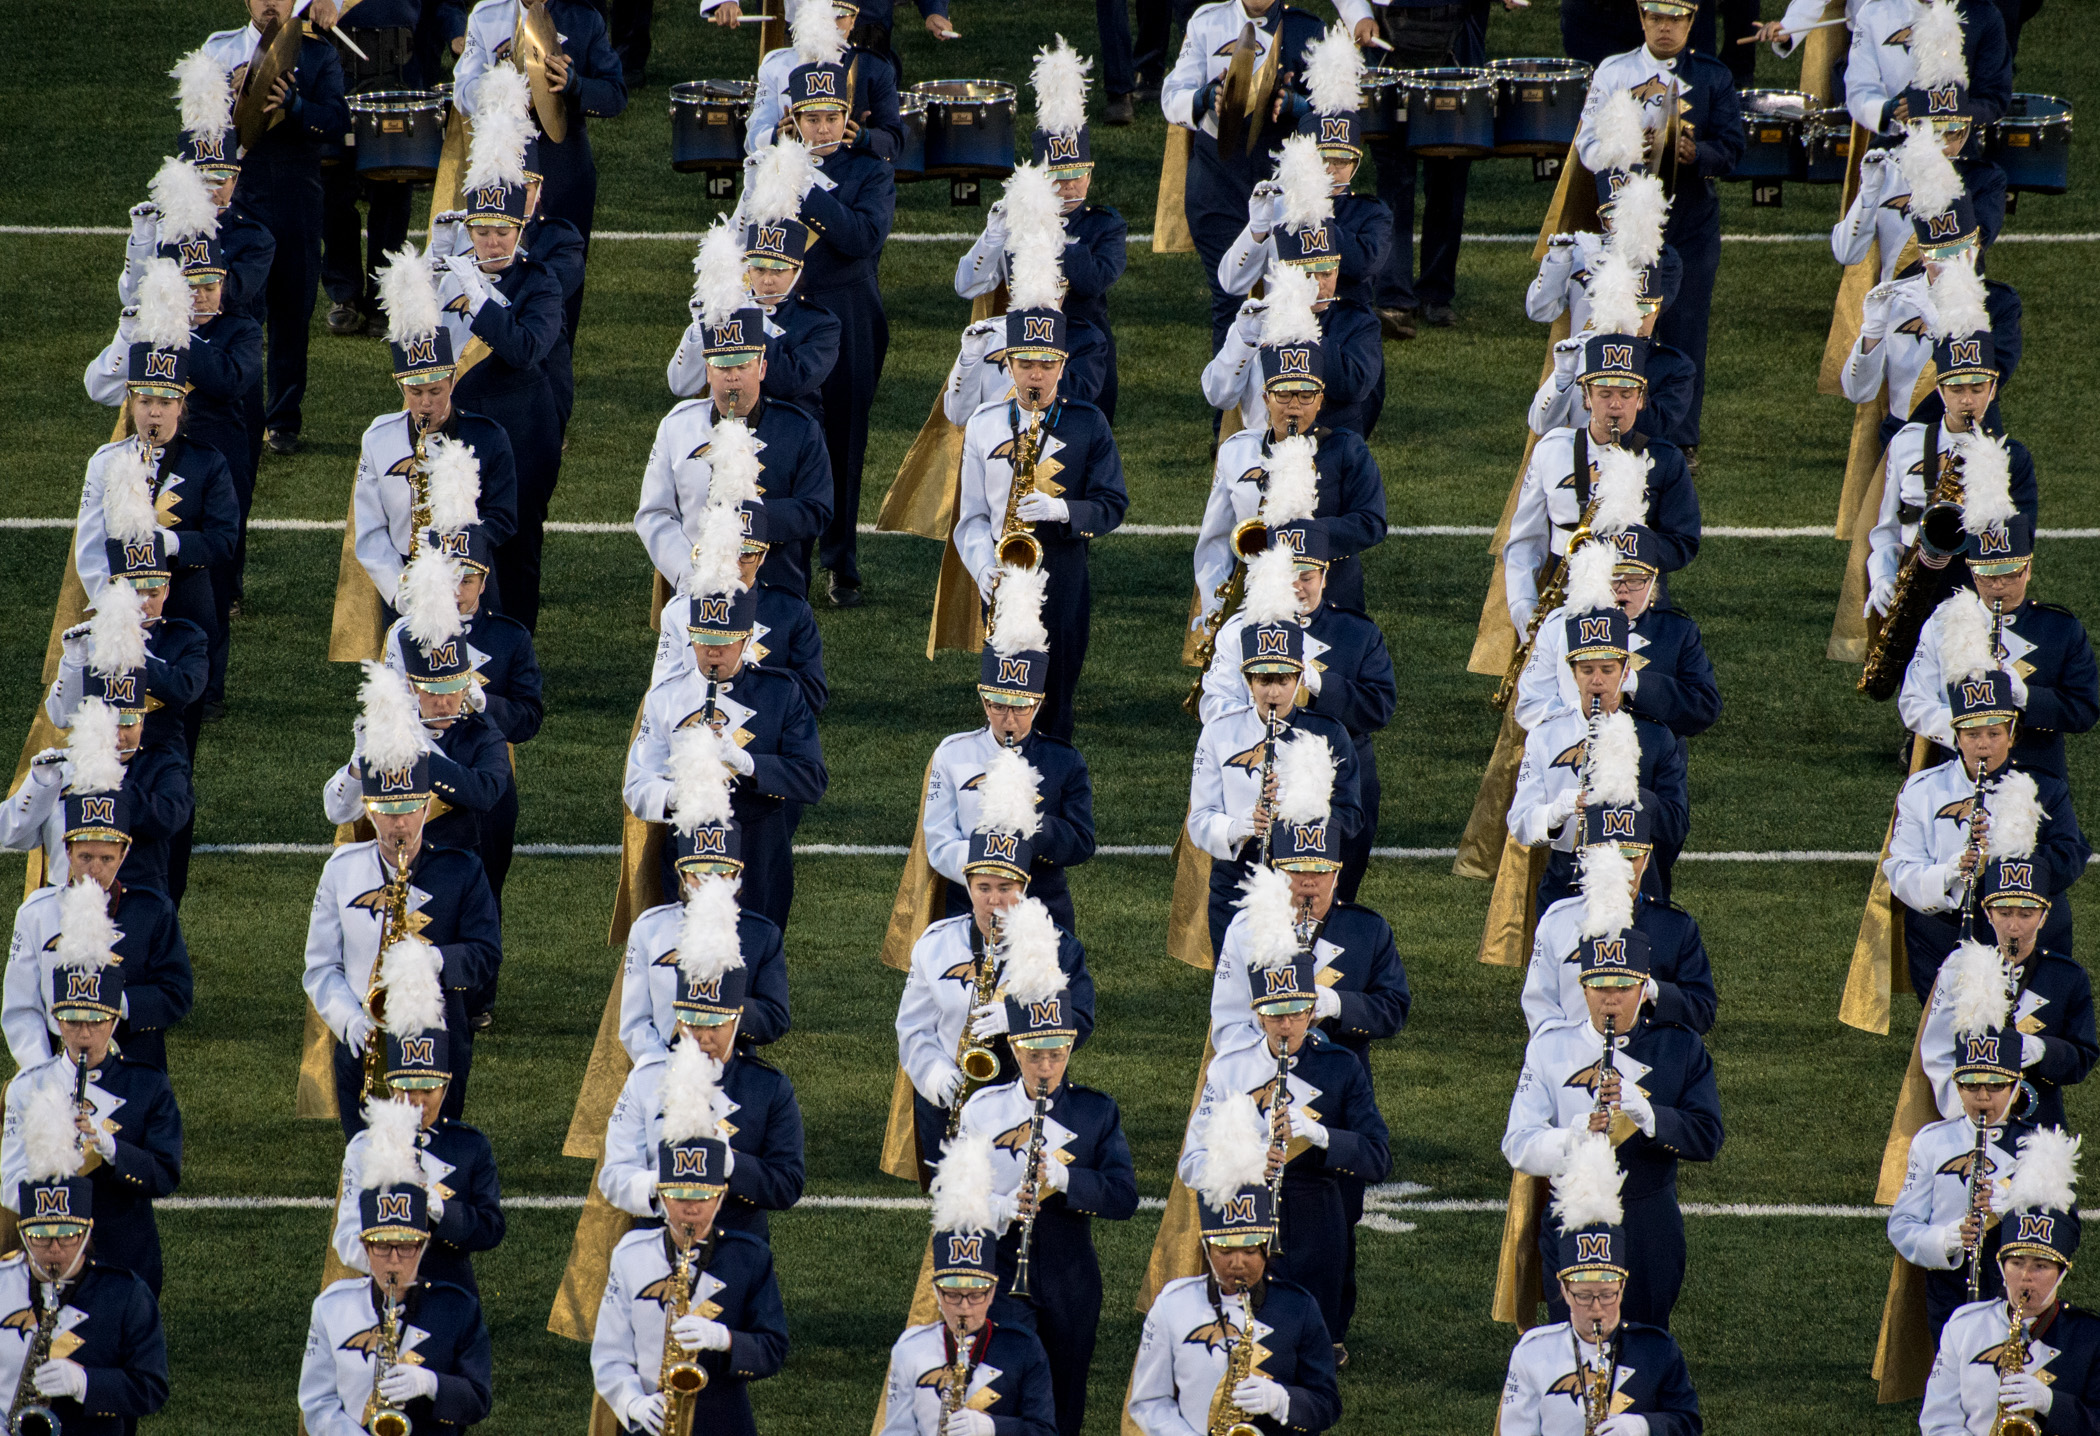 The Spirit of the West wind section walk the line during a halftime performance in Bozeman, Mont. Saturday, Sept. 09, 2017.